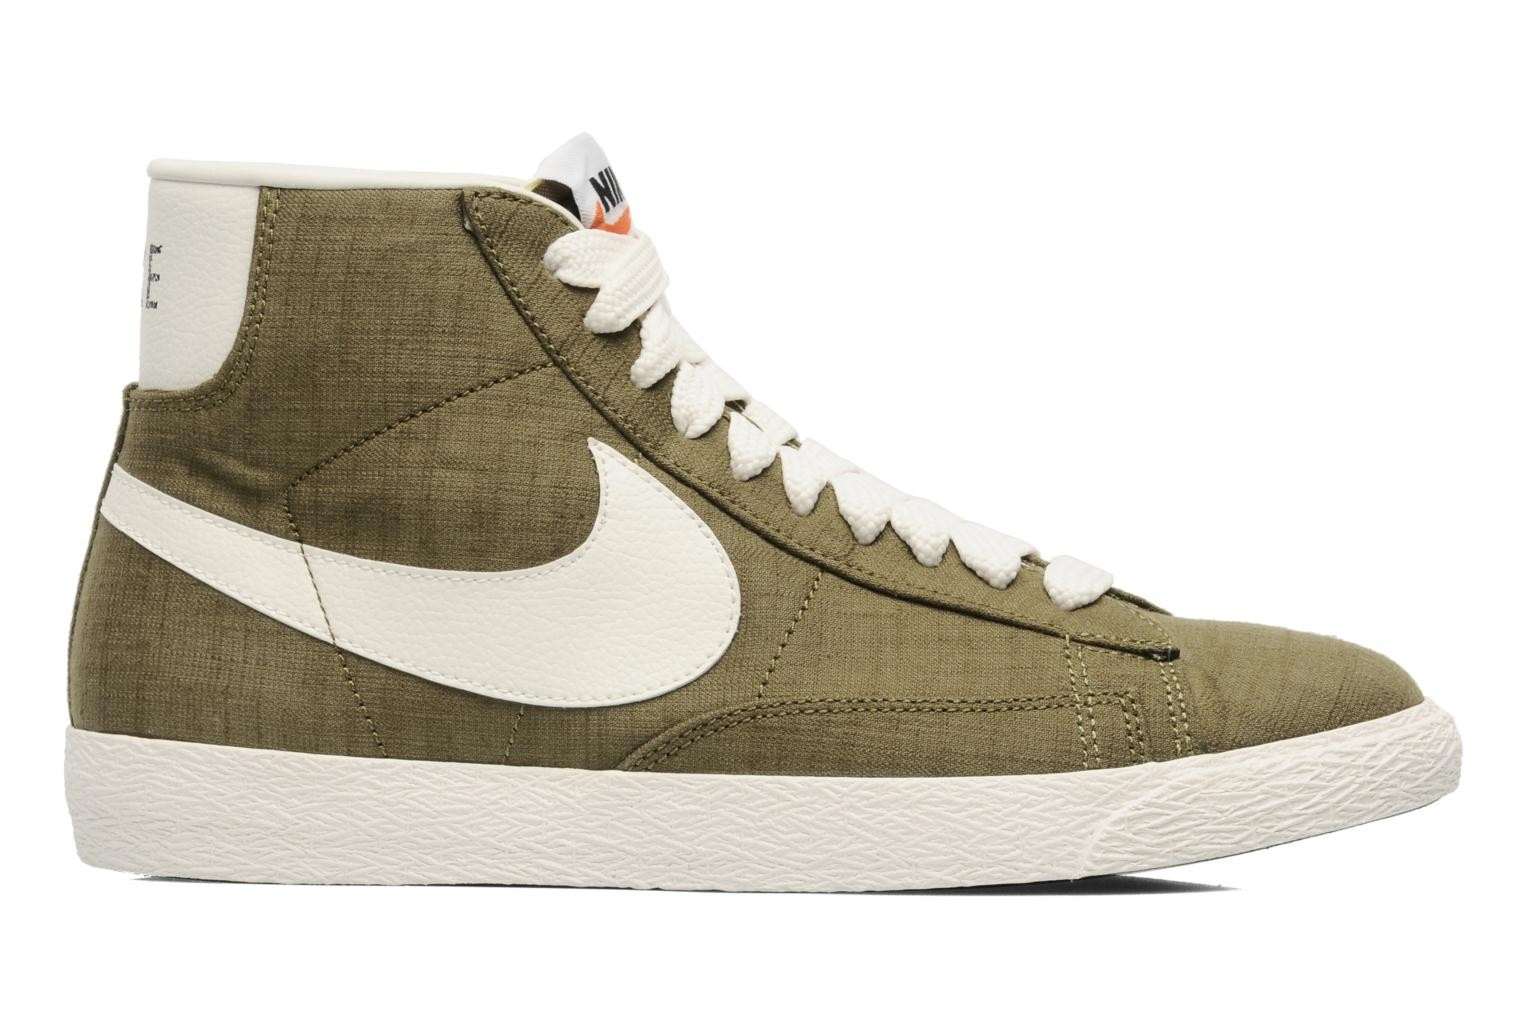 Nike Blazer Mid Prm Vntg Canvas Squadron Green Sail Black Men's Shoe